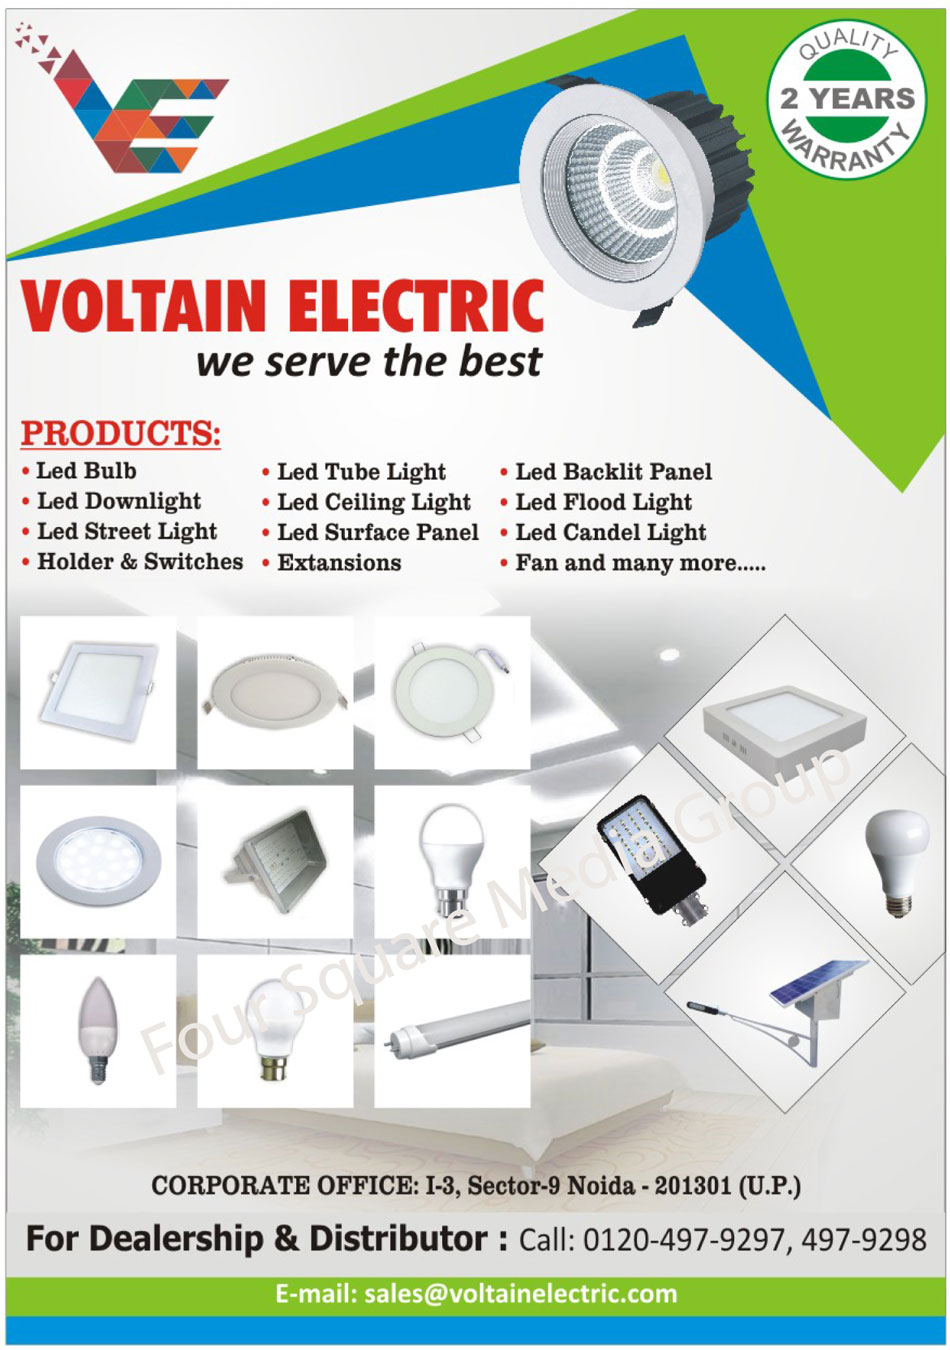 Led Lights, Led Bulbs, Led Down Lights, Led Street Lights, Led Tube Lights, Led Ceiling Lights, Led Flood Lights, Led Candle Lights, Led Panels, Led Panel Lights, Led Surface Panel Lights, Led Backlit Panel Lights, Led Holders, Switches, Extansions, Fans